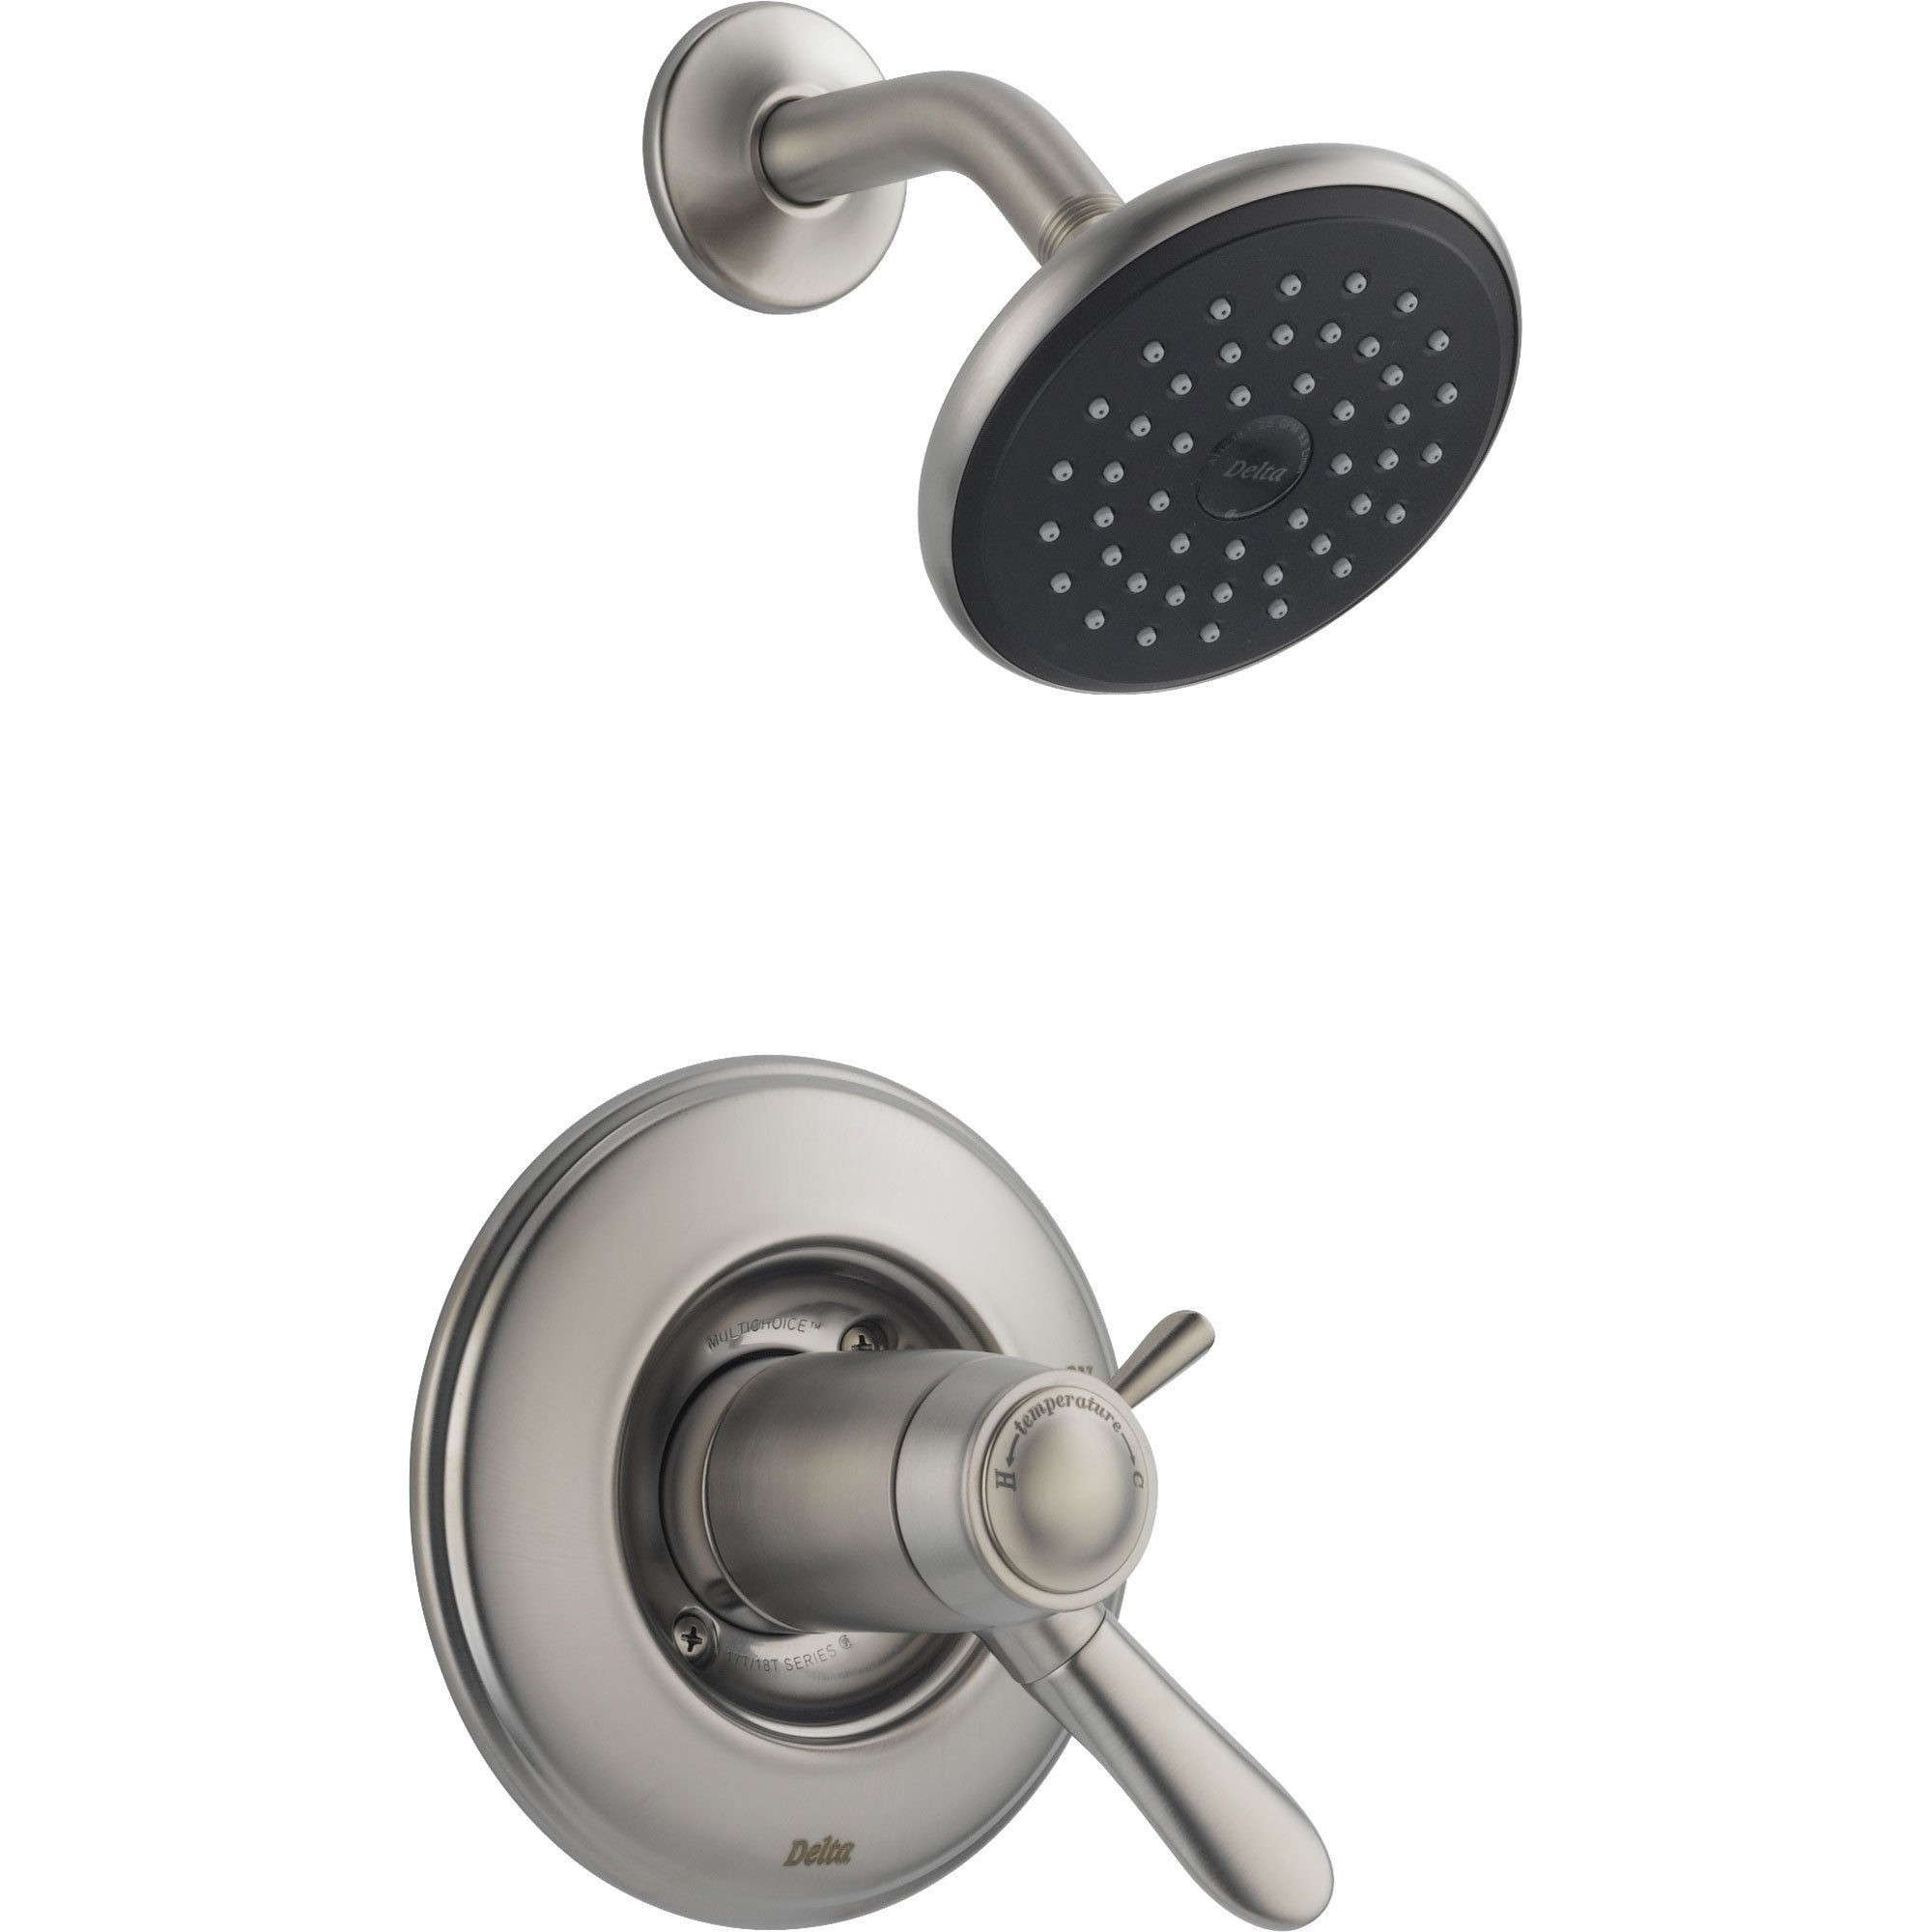 Delta Lahara Stainless Steel Thermostatic Control Shower Faucet with Valve D801V